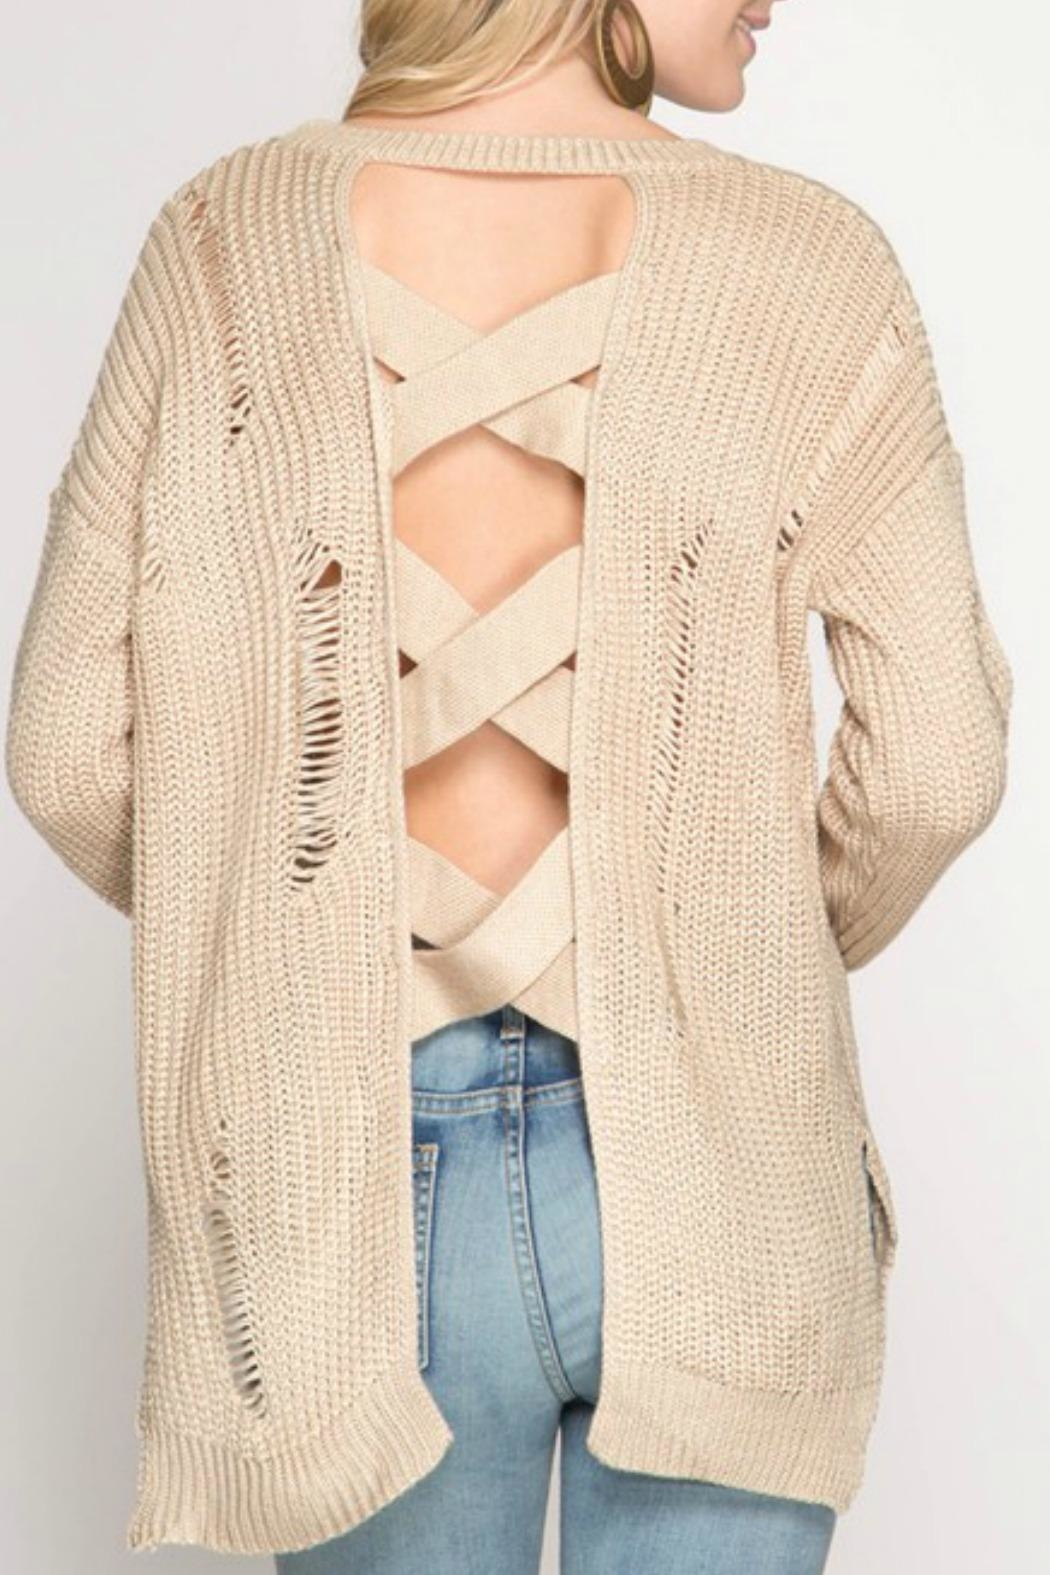 She + Sky Distressed Open-Back Sweater - Front Full Image